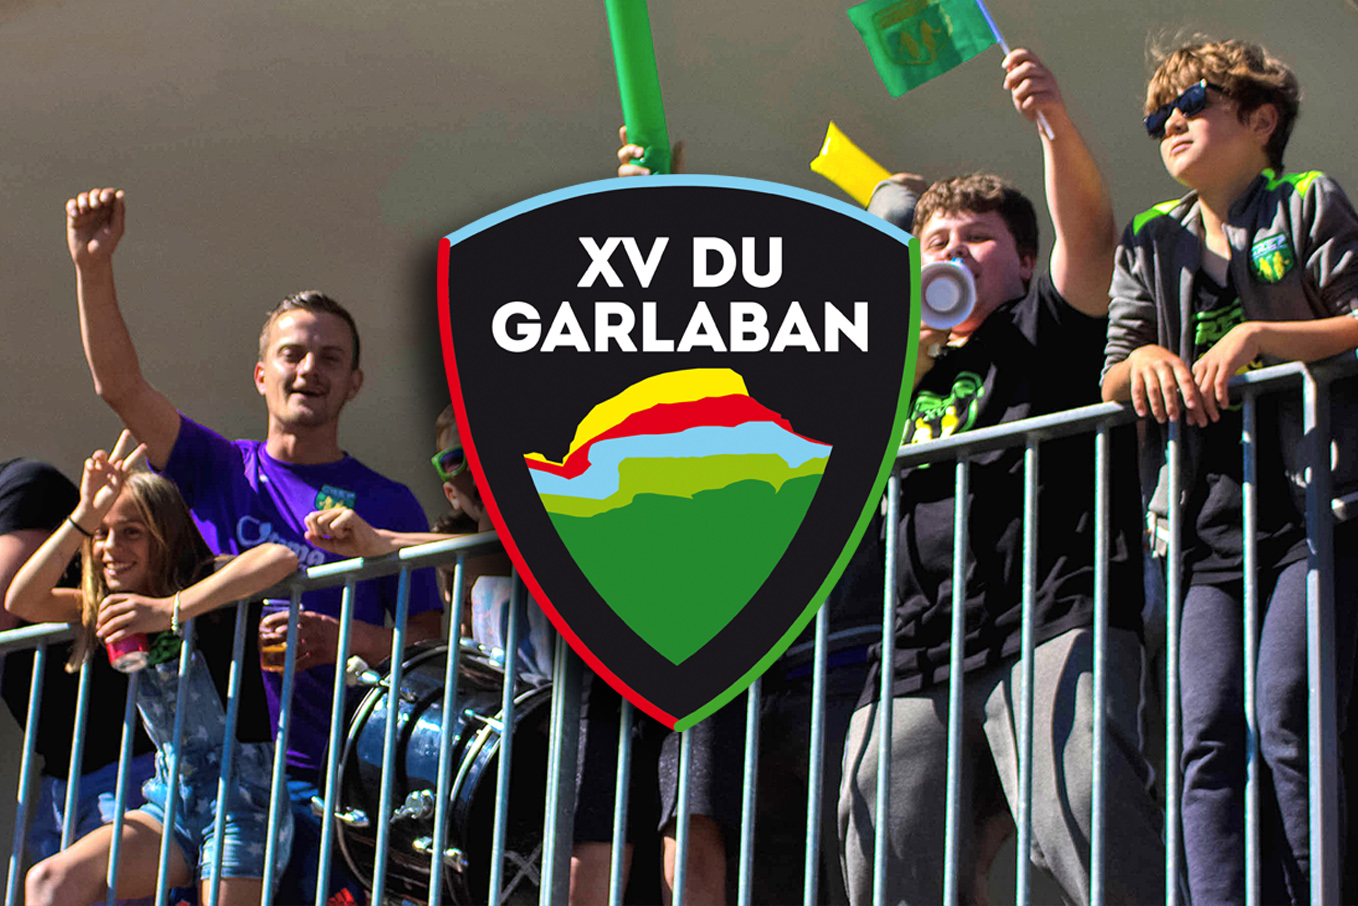 Le XV du Garlaban : explications.